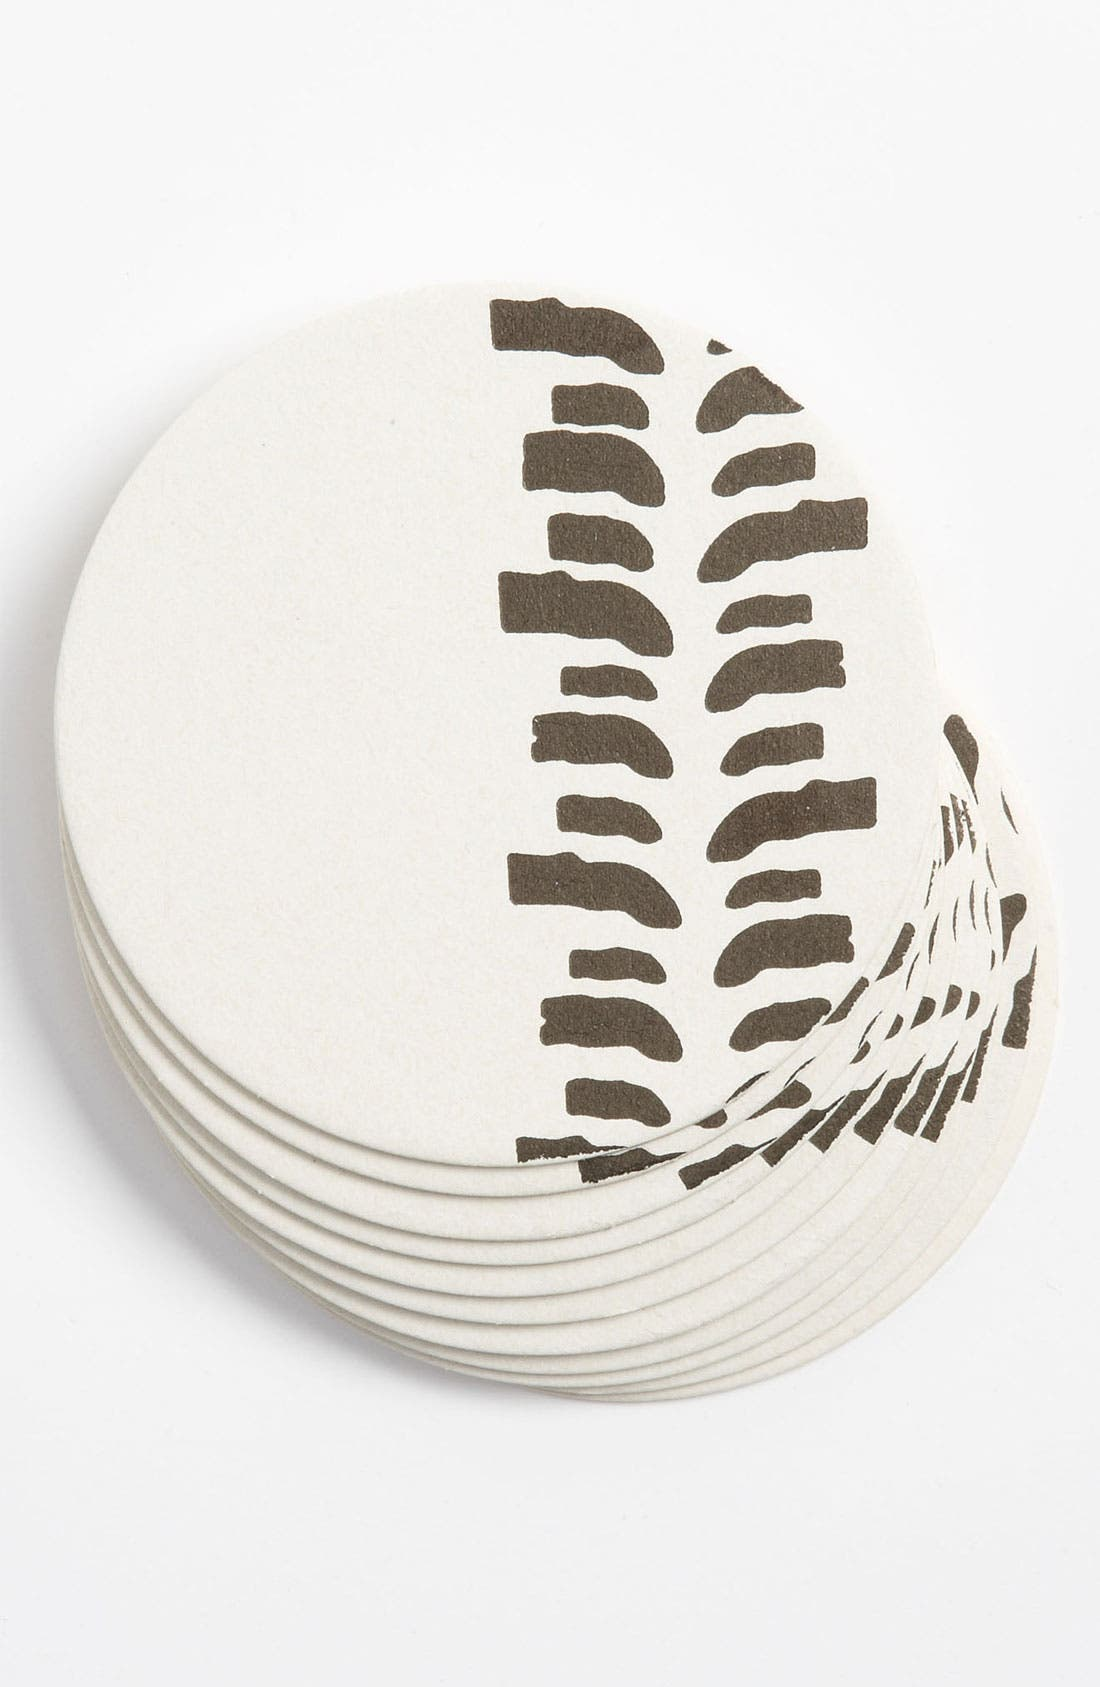 Main Image - 'Truck Tires' Letterpress Coasters (Set of 10)